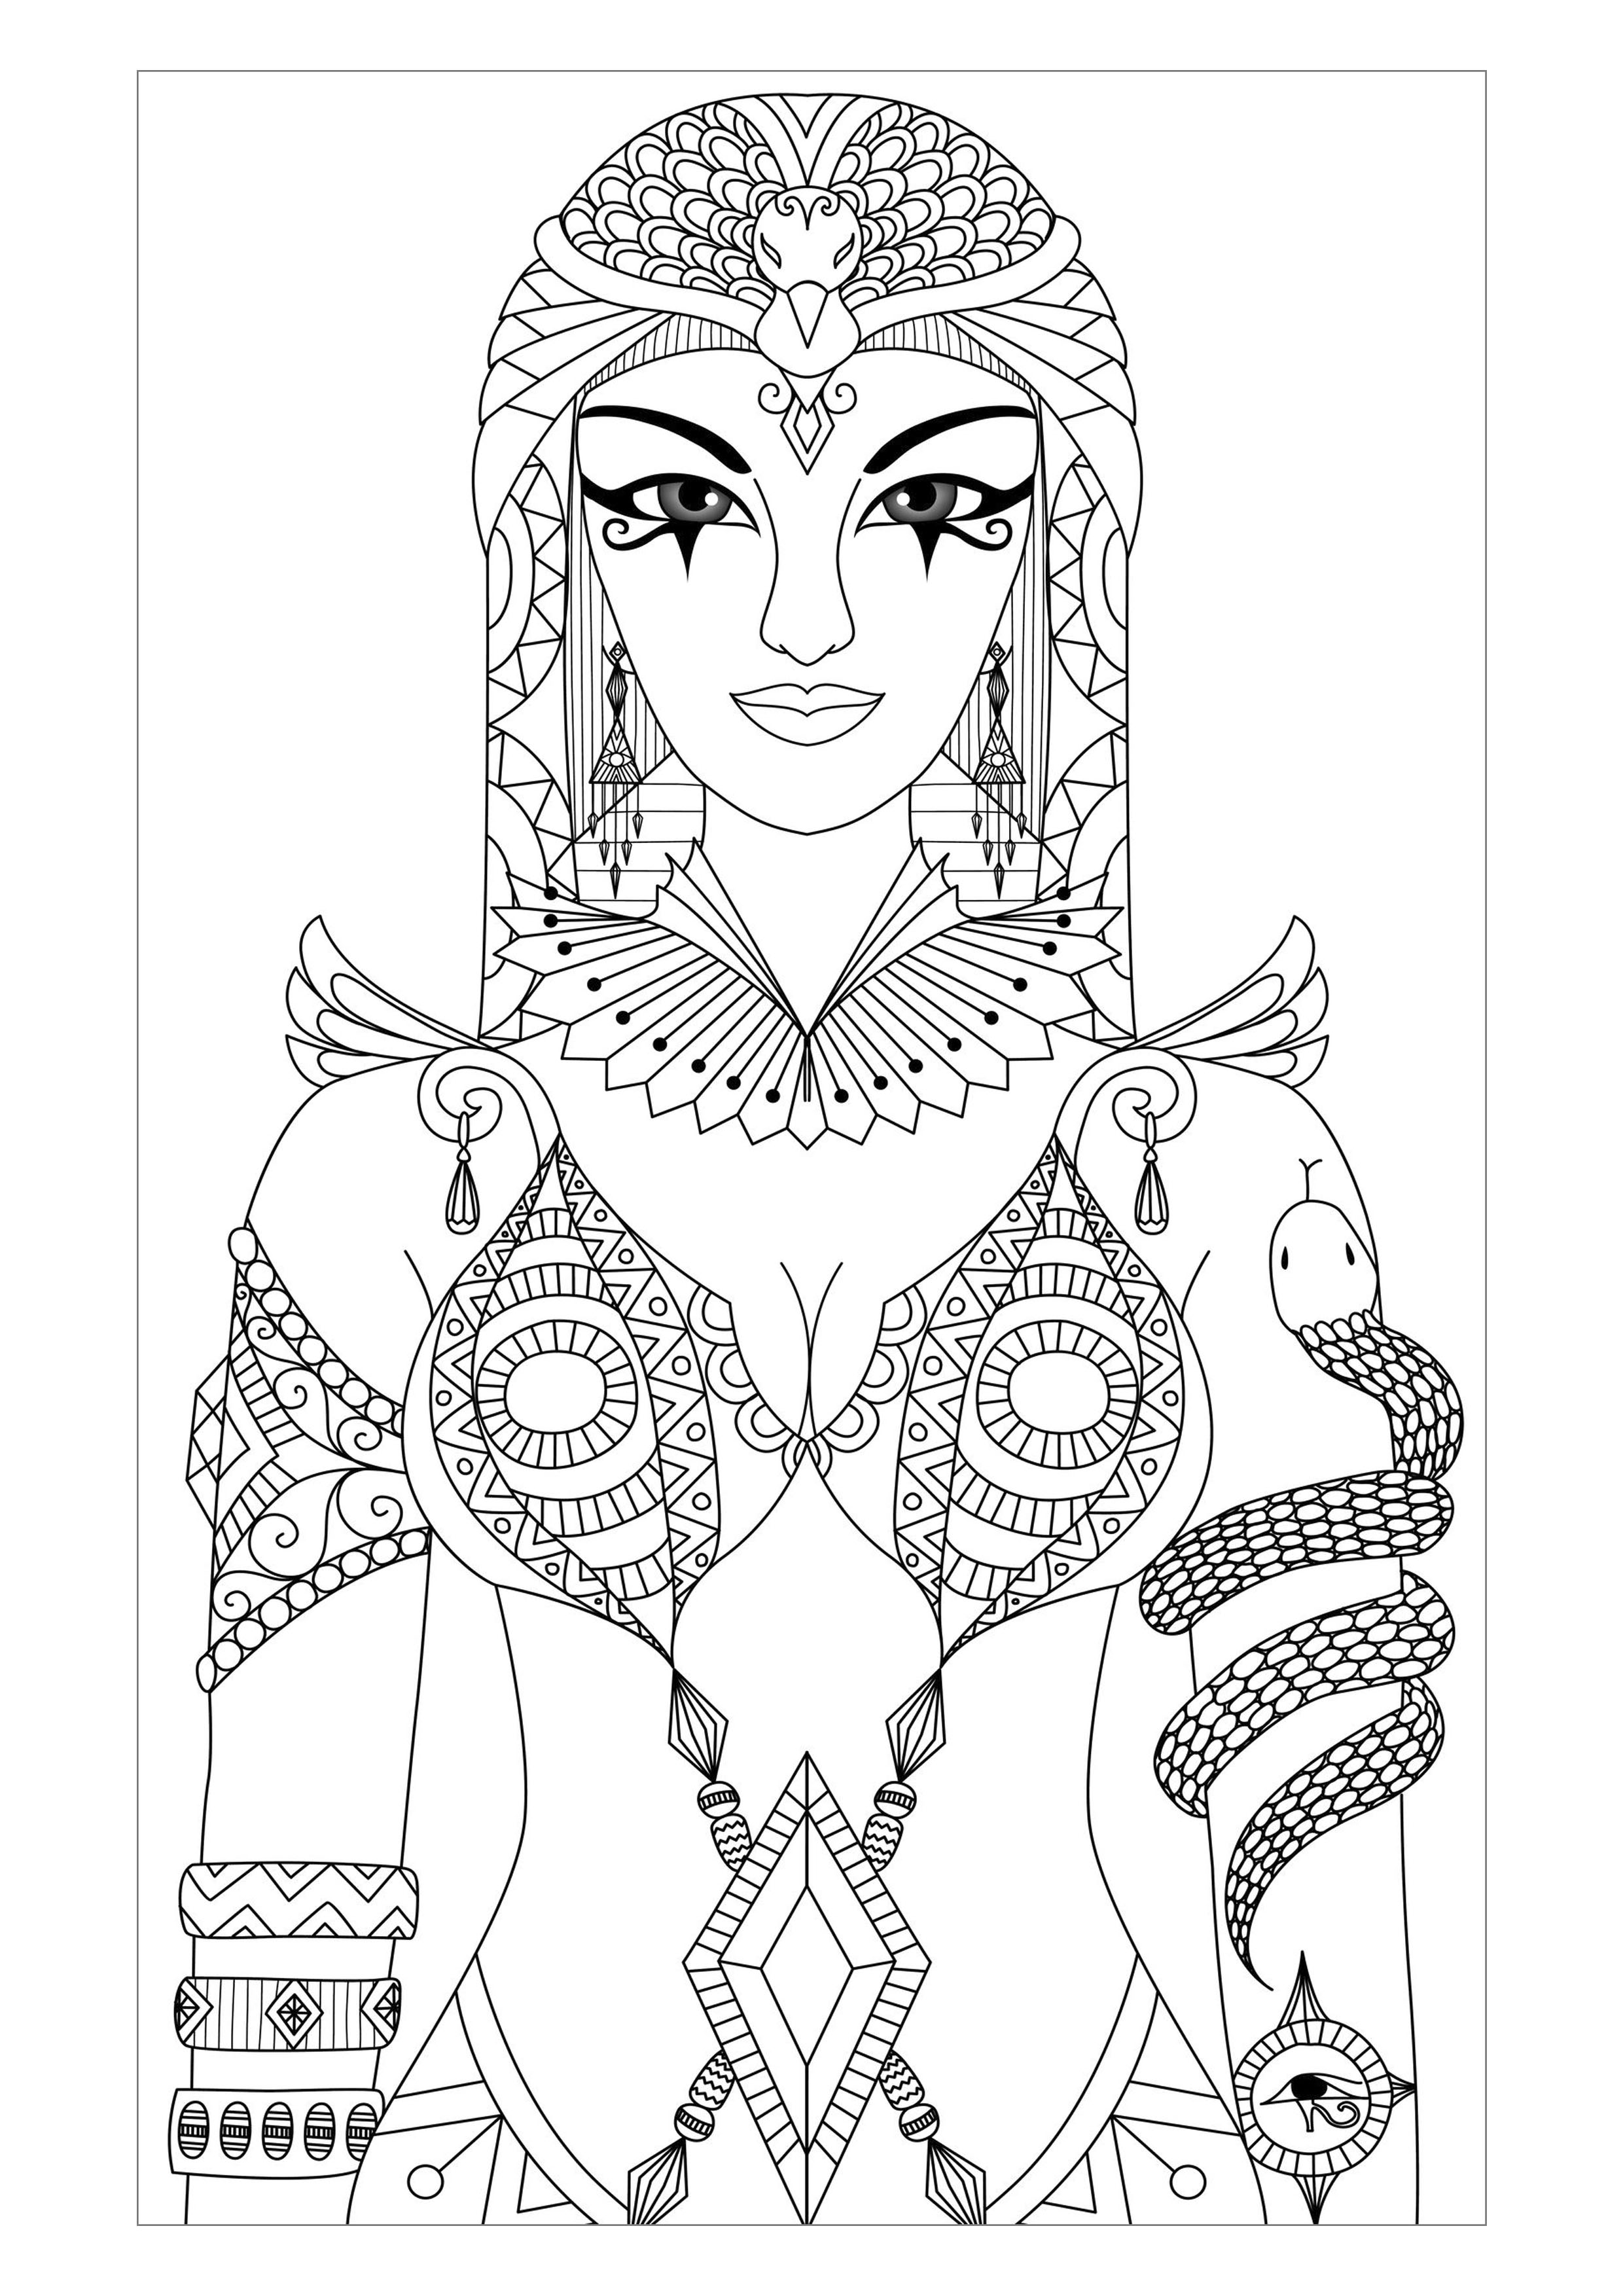 Beautiful Adult coloring page to print and color